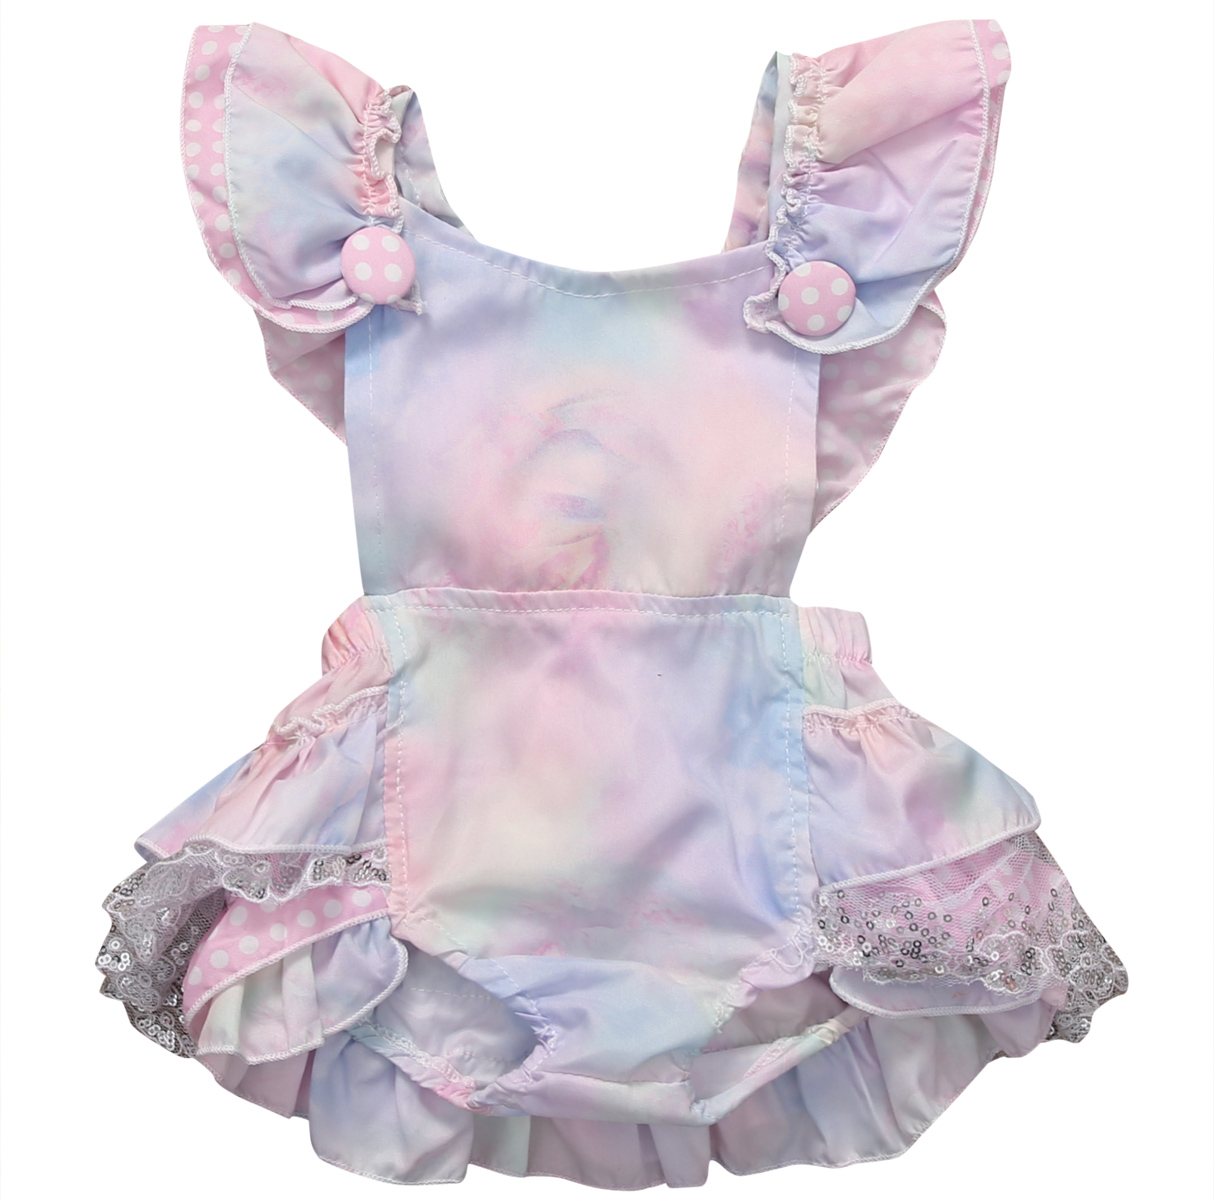 Cute Floral Baby Romper 2017 Ruffles Lace Jumpsuit Newborn Baby Girls Bow Sunsuit Outfits Children Clothes 0-24M 2pcs set newborn floral baby girl clothes 2017 summer sleeveless cotton ruffles romper baby bodysuit headband outfits sunsuit